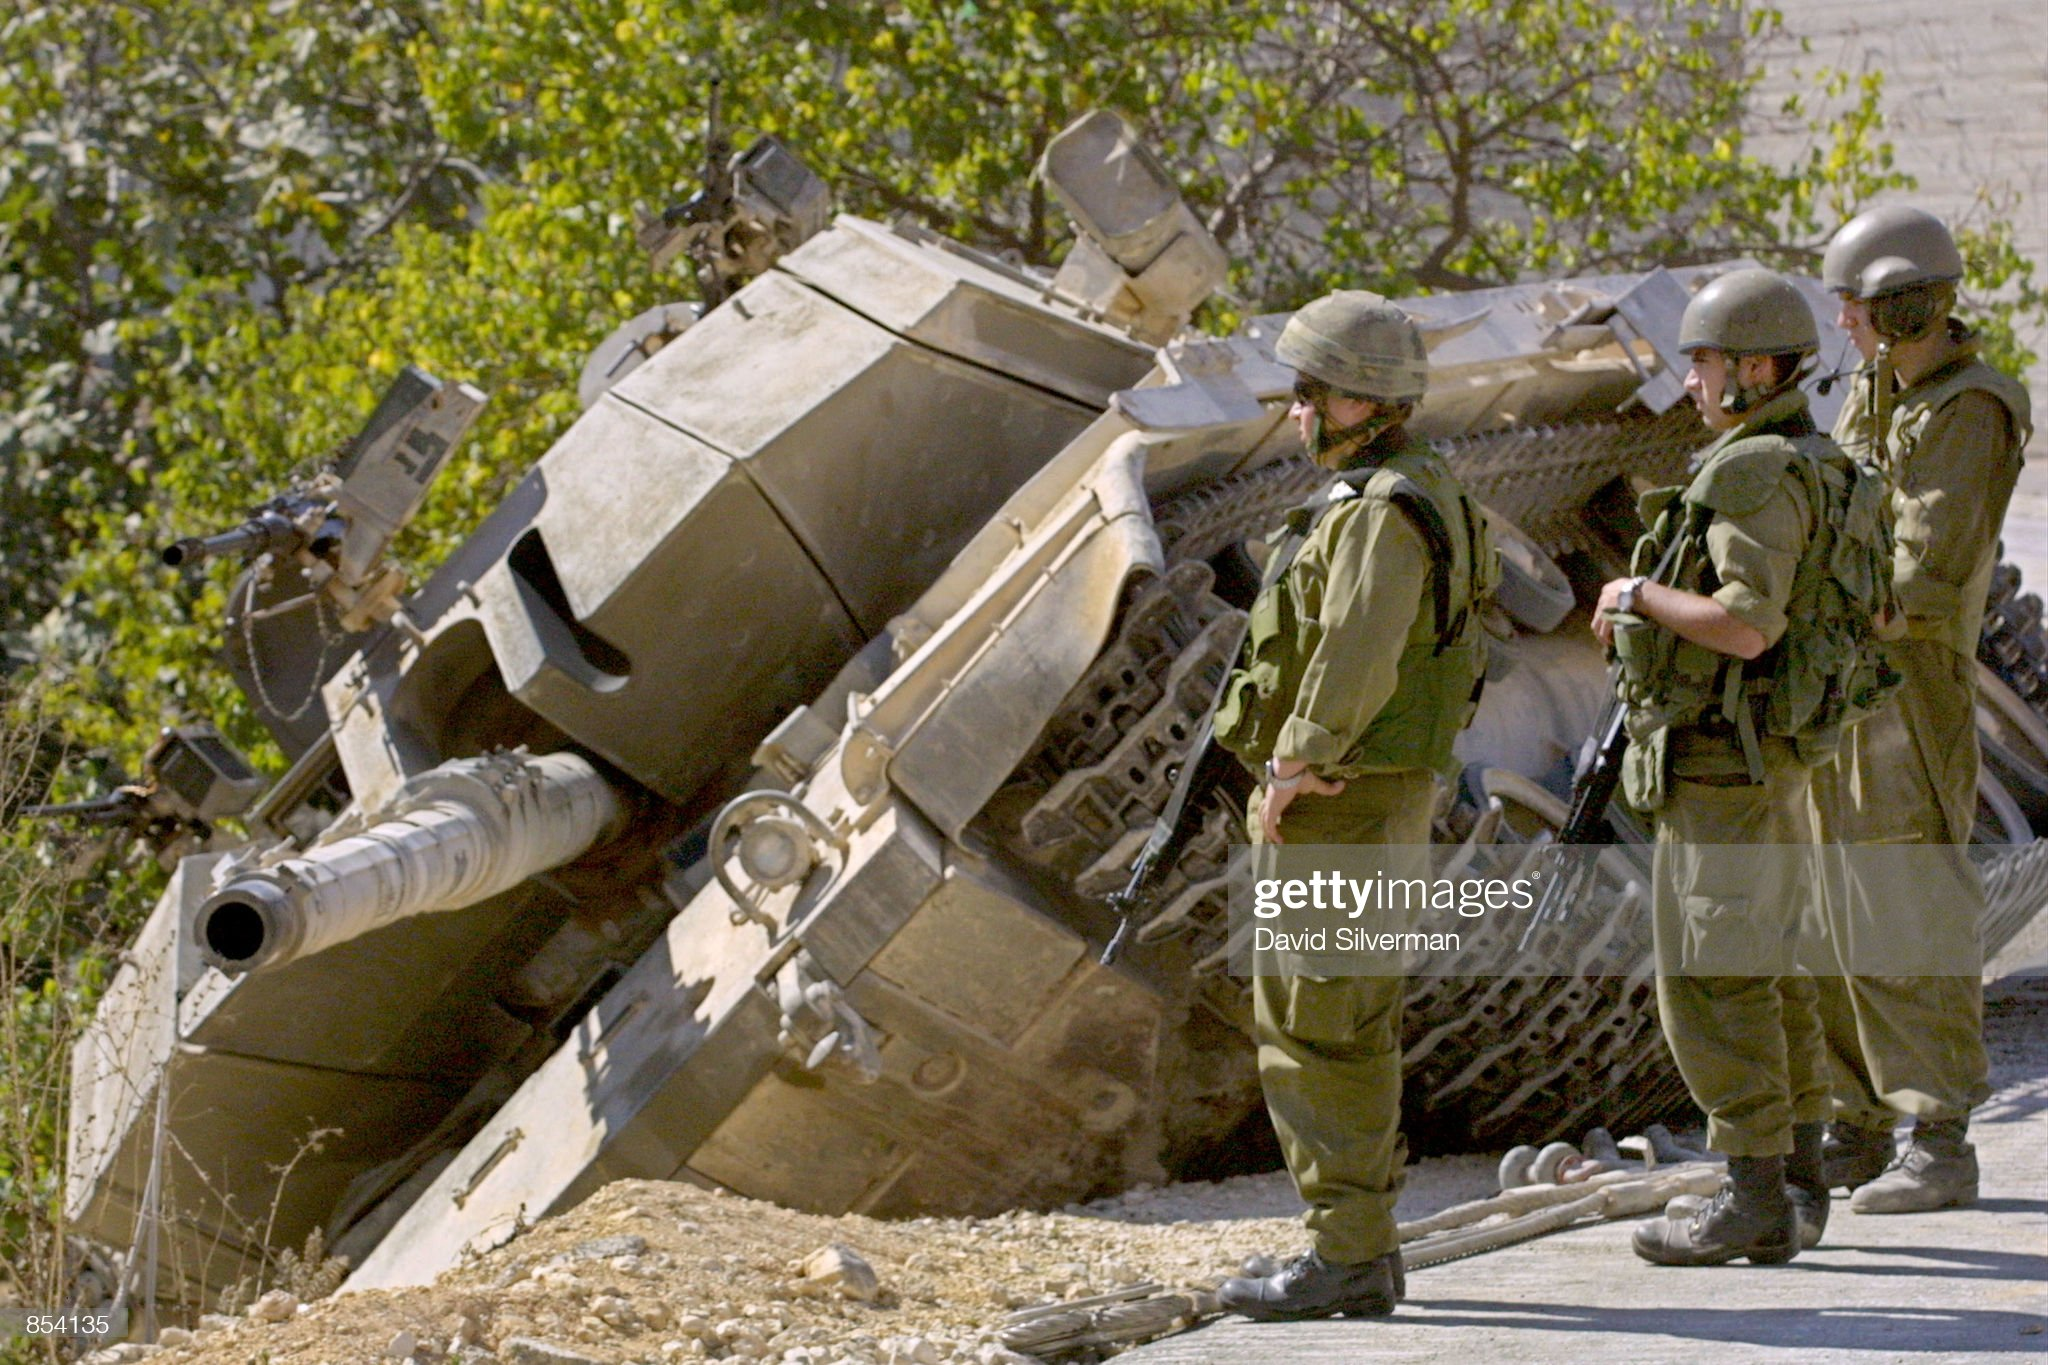 https://media.gettyimages.com/photos/israeli-soldiers-stand-by-their-tank-october-26-2001-after-they-drove-picture-id854135?s=2048x2048